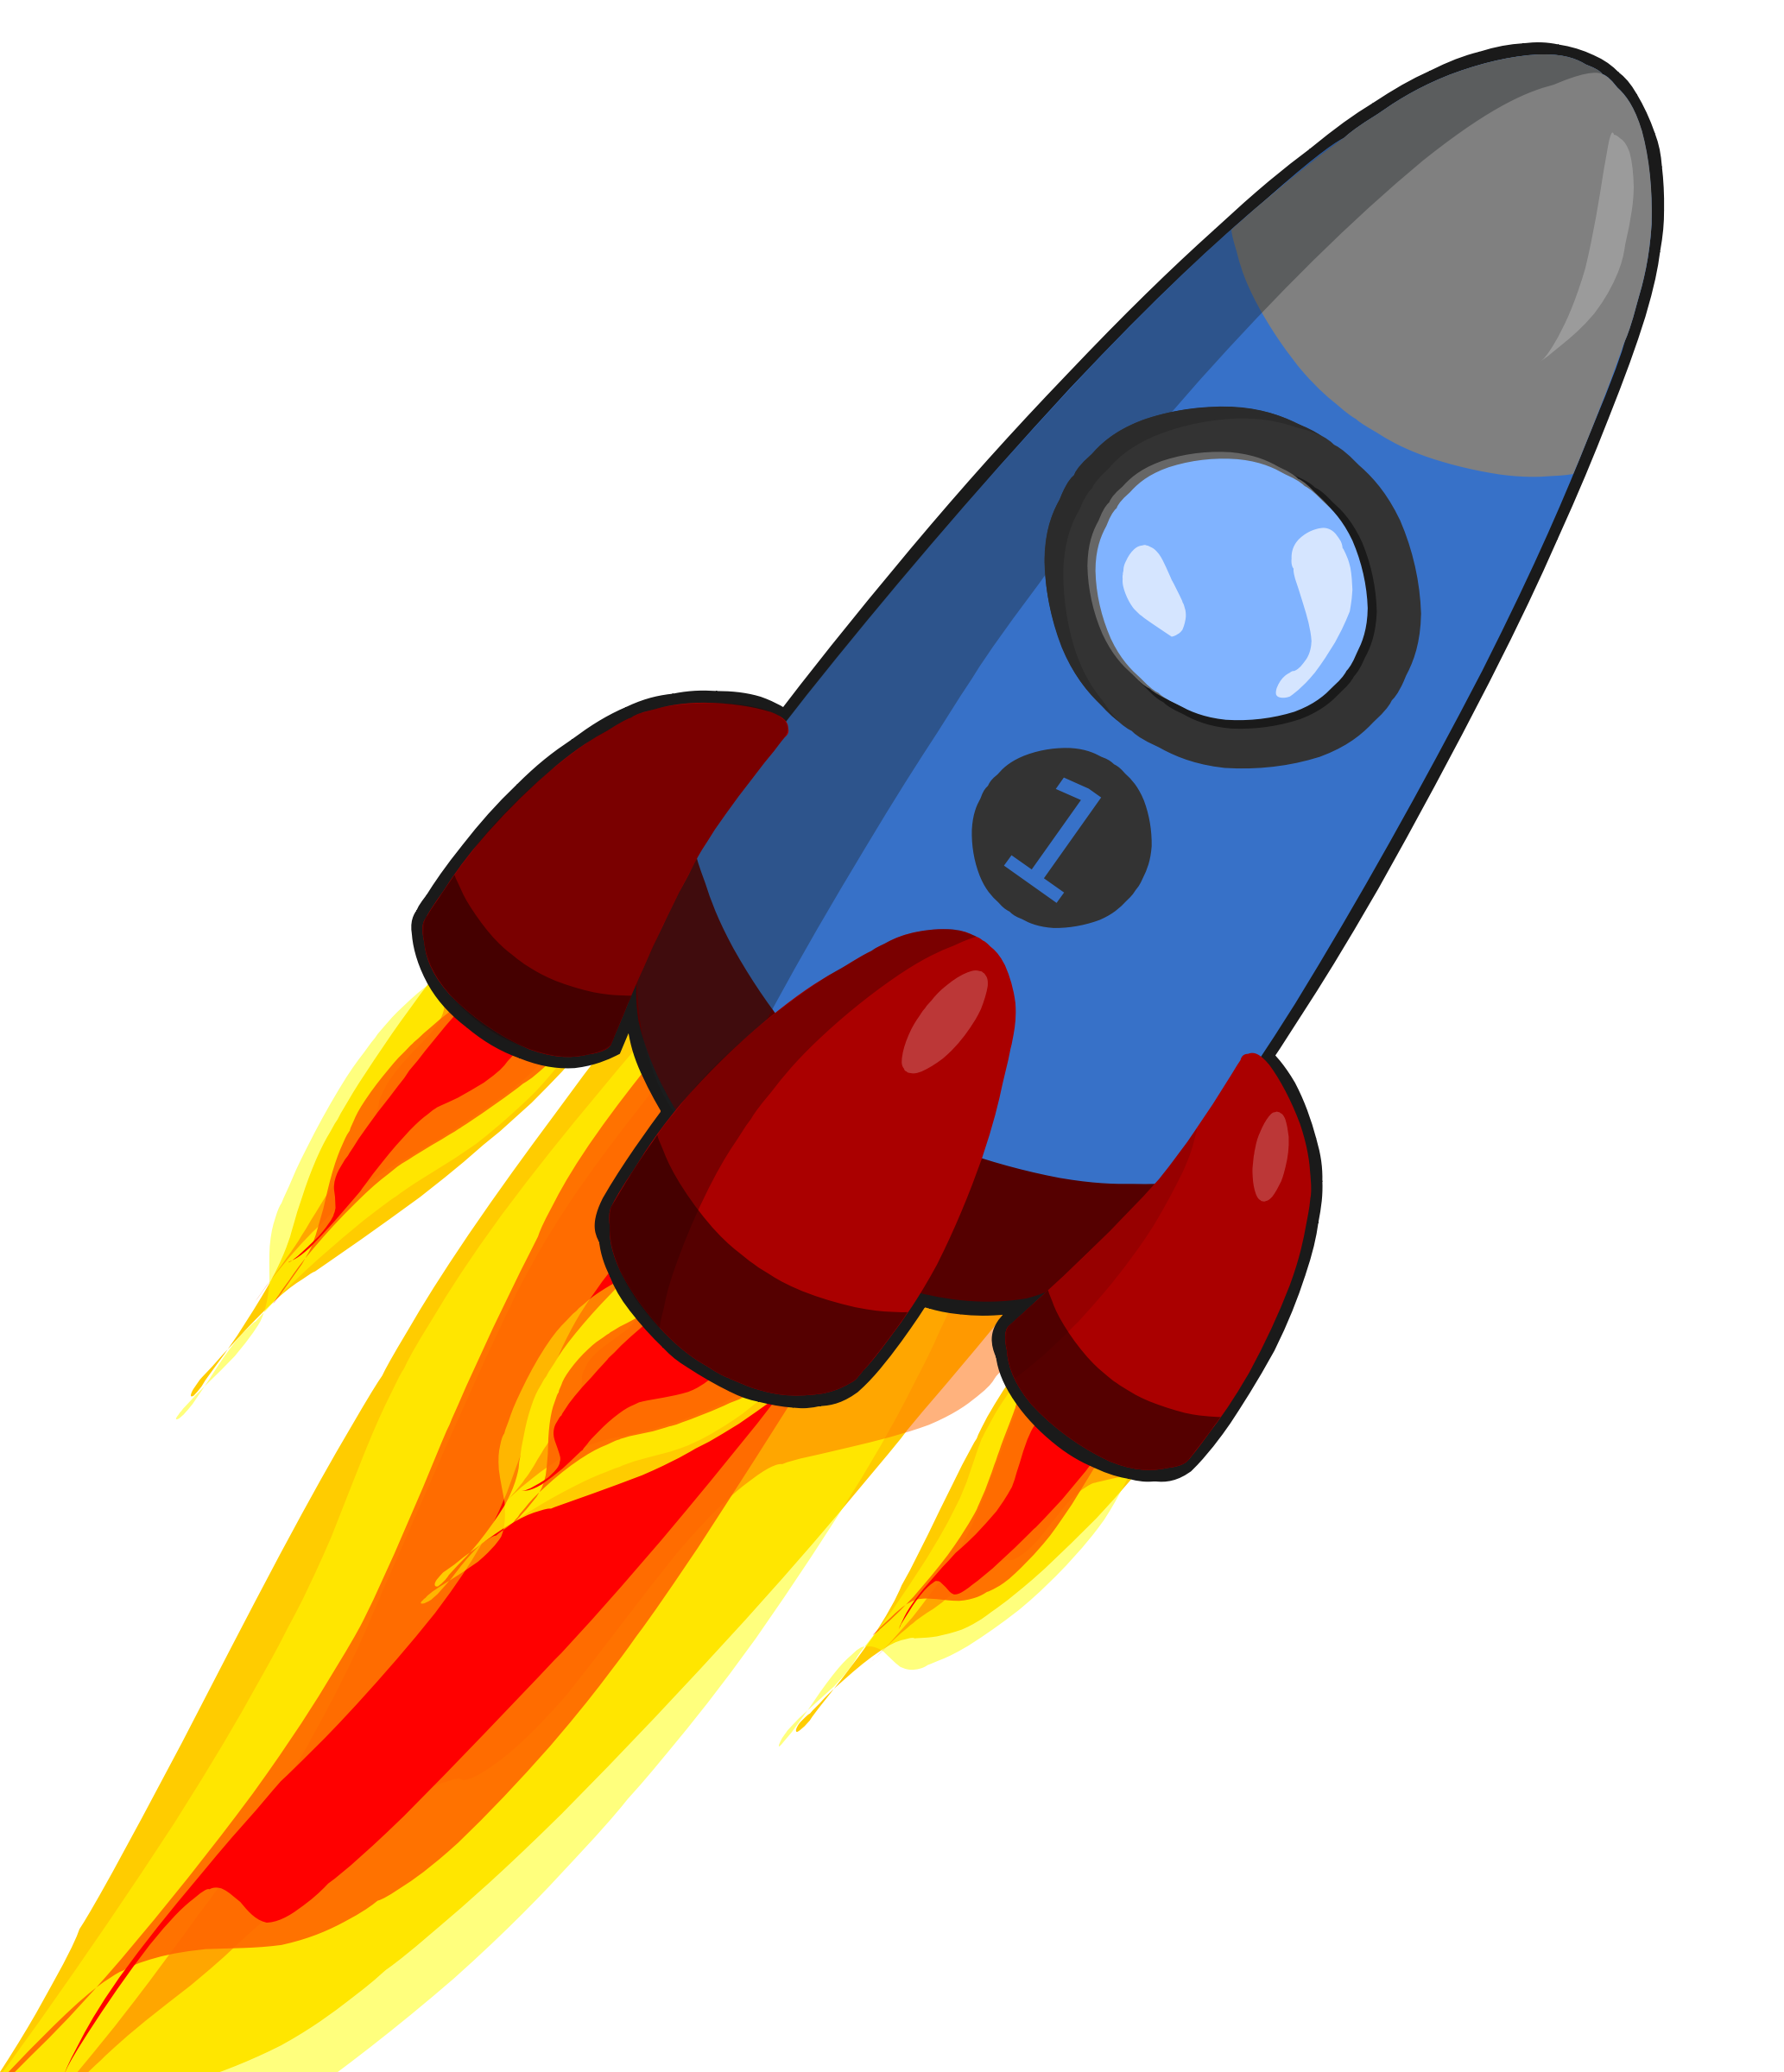 Rocket clipart animated Collection Animated Clip ship Rocket